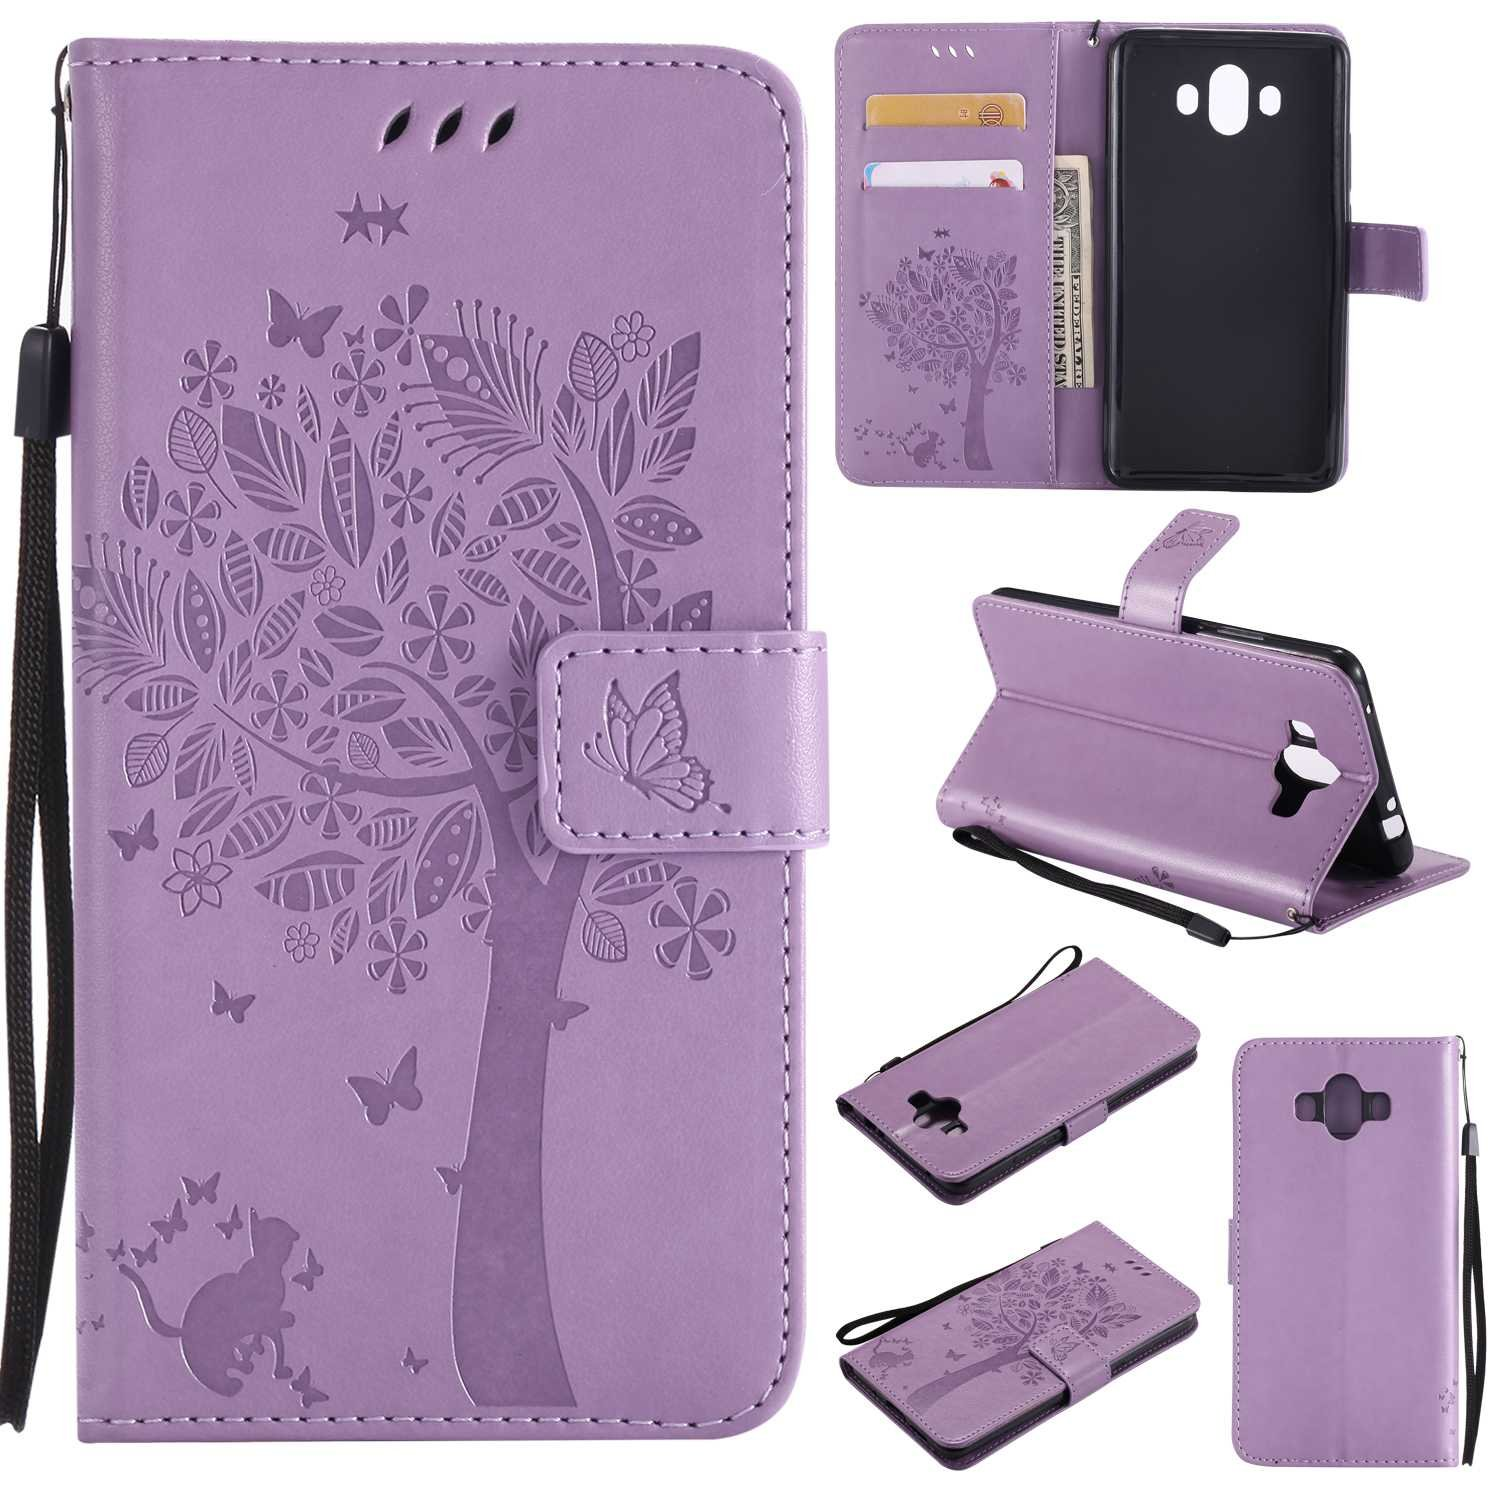 Huawei Mate 10 Wallet Case, UNEXTATI Leather Flip Cover Case with Kickstand Feature for Huawei Mate 10 (Light Purple #12)